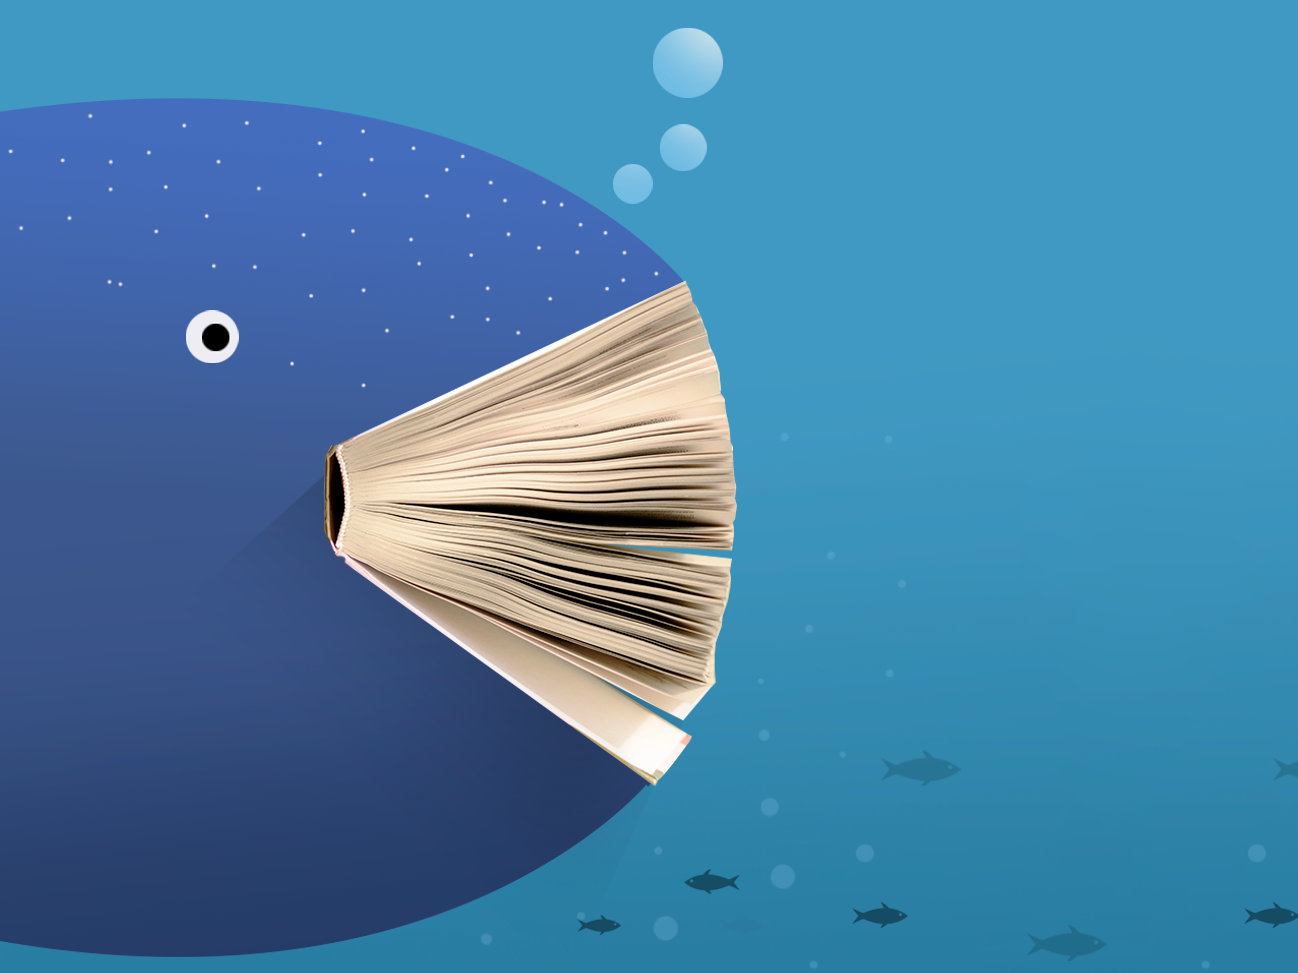 Book 5 reading bookworm underwater photoshop creature illustration whale sea bookstore book